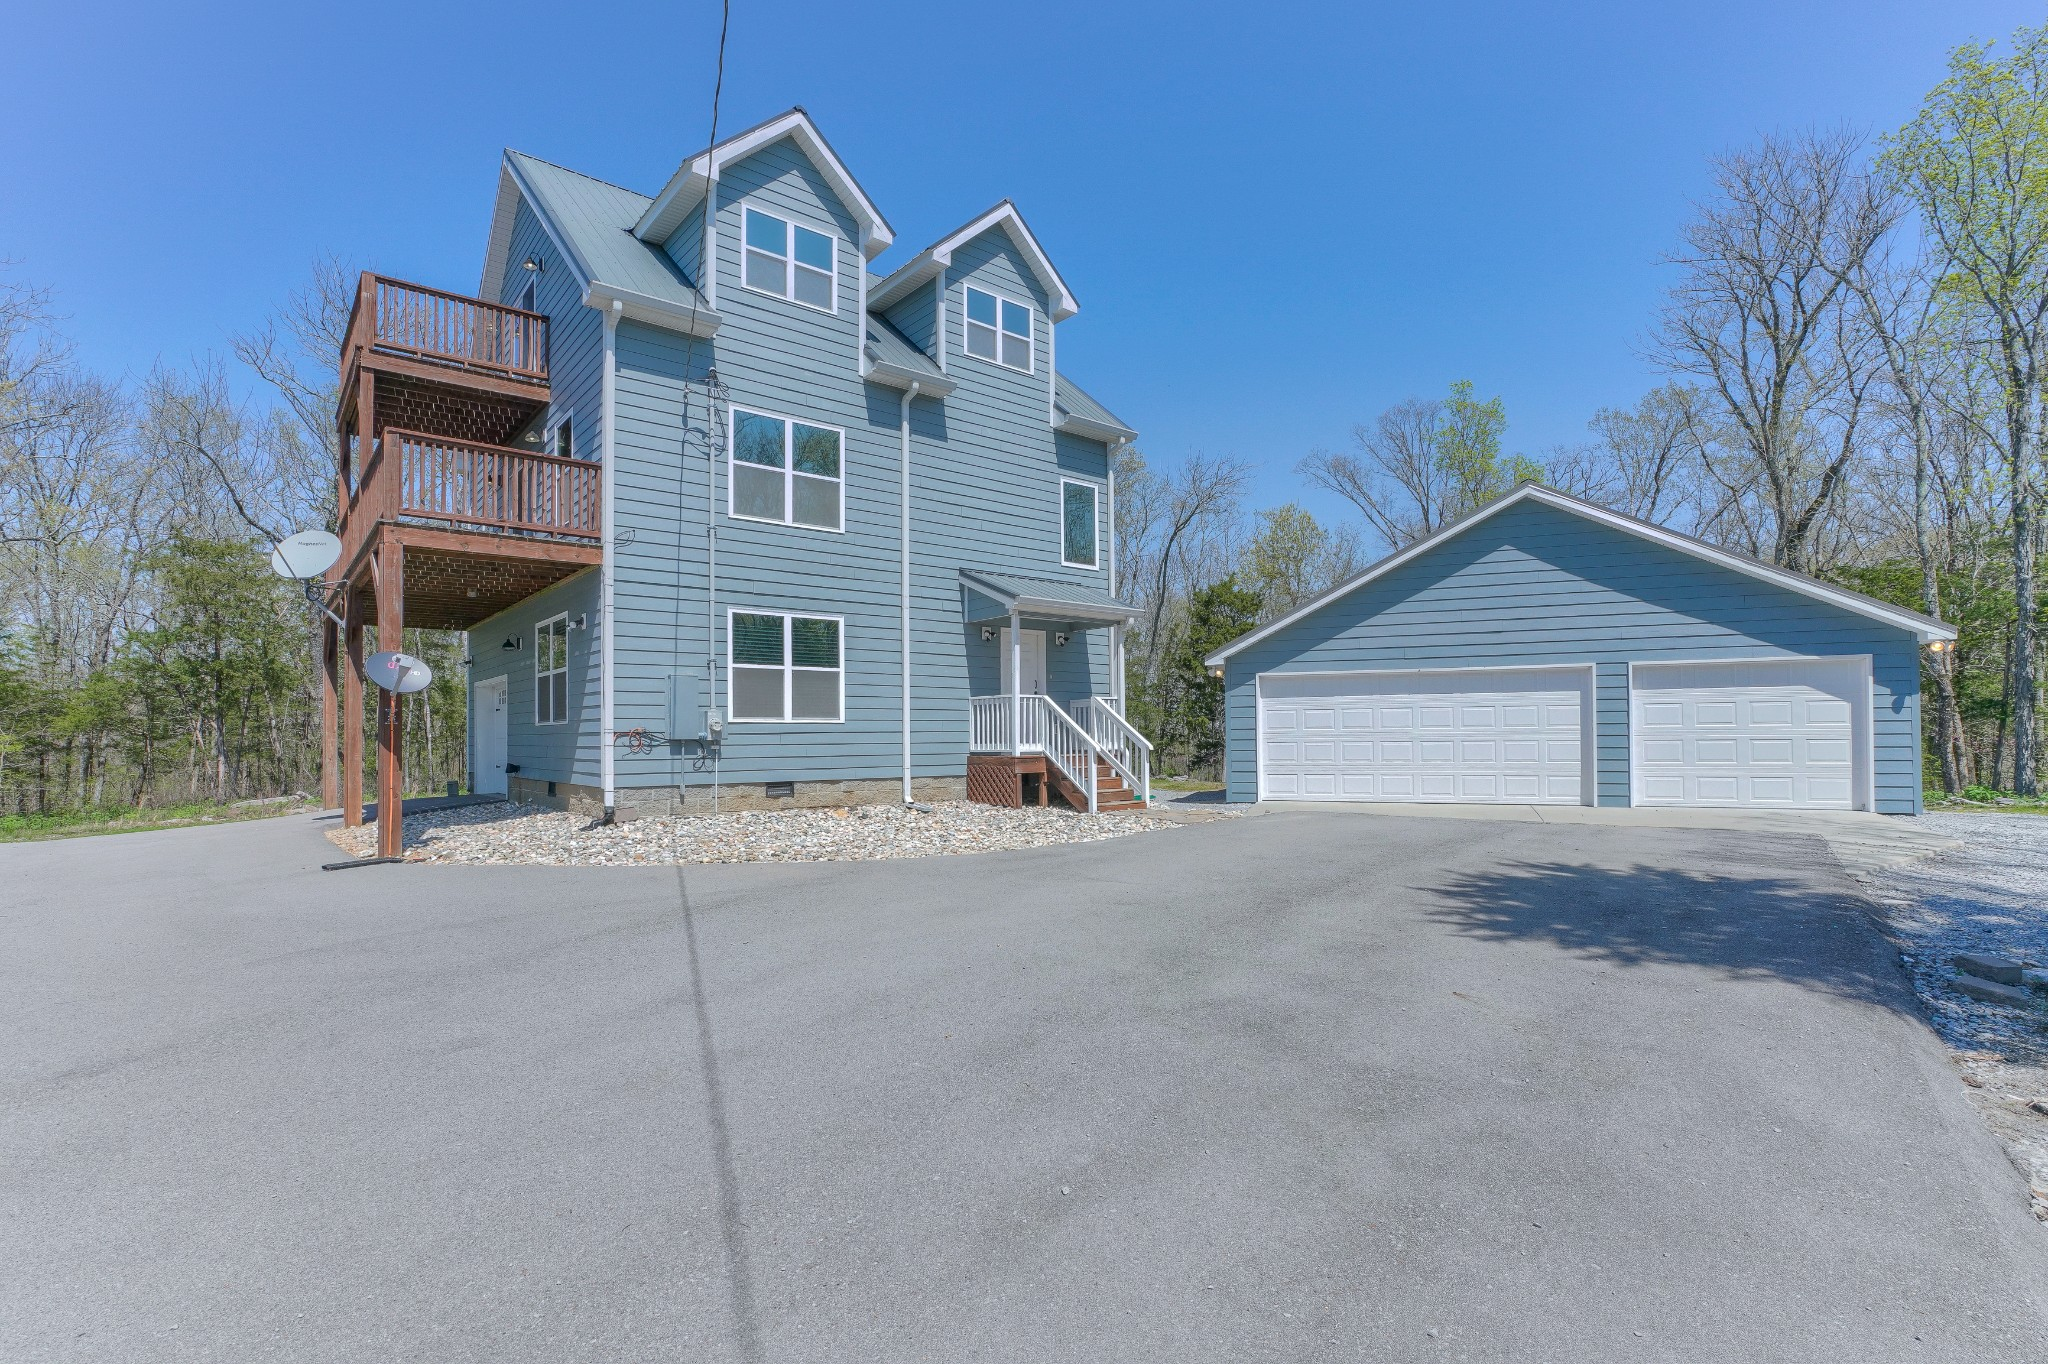 9515 S Windrow Rd Property Photo - Rockvale, TN real estate listing